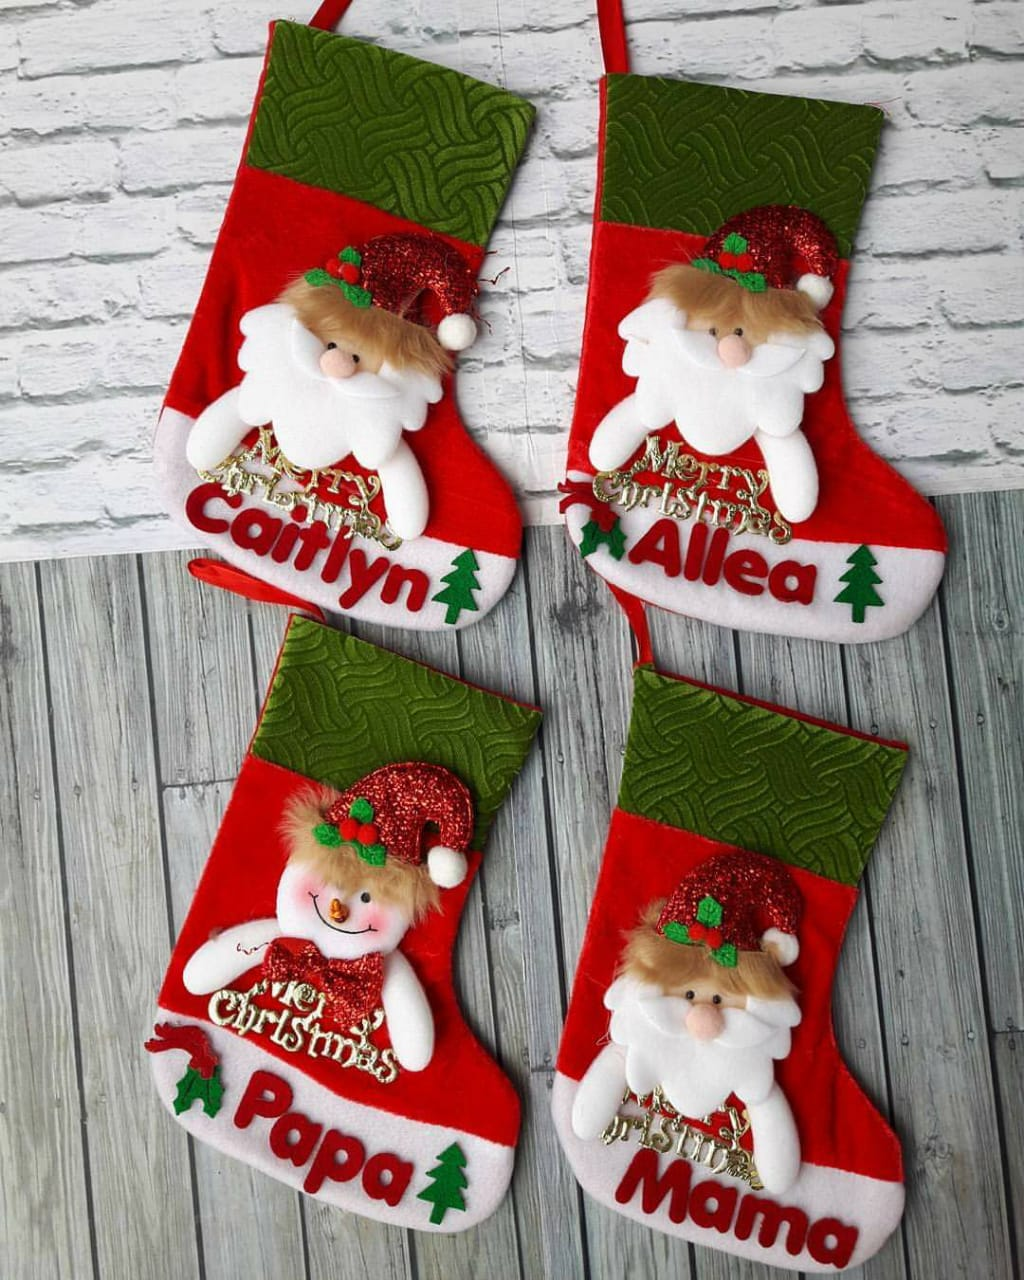 Christmas Socks Singapore - Personalised Christmas Stockings SG